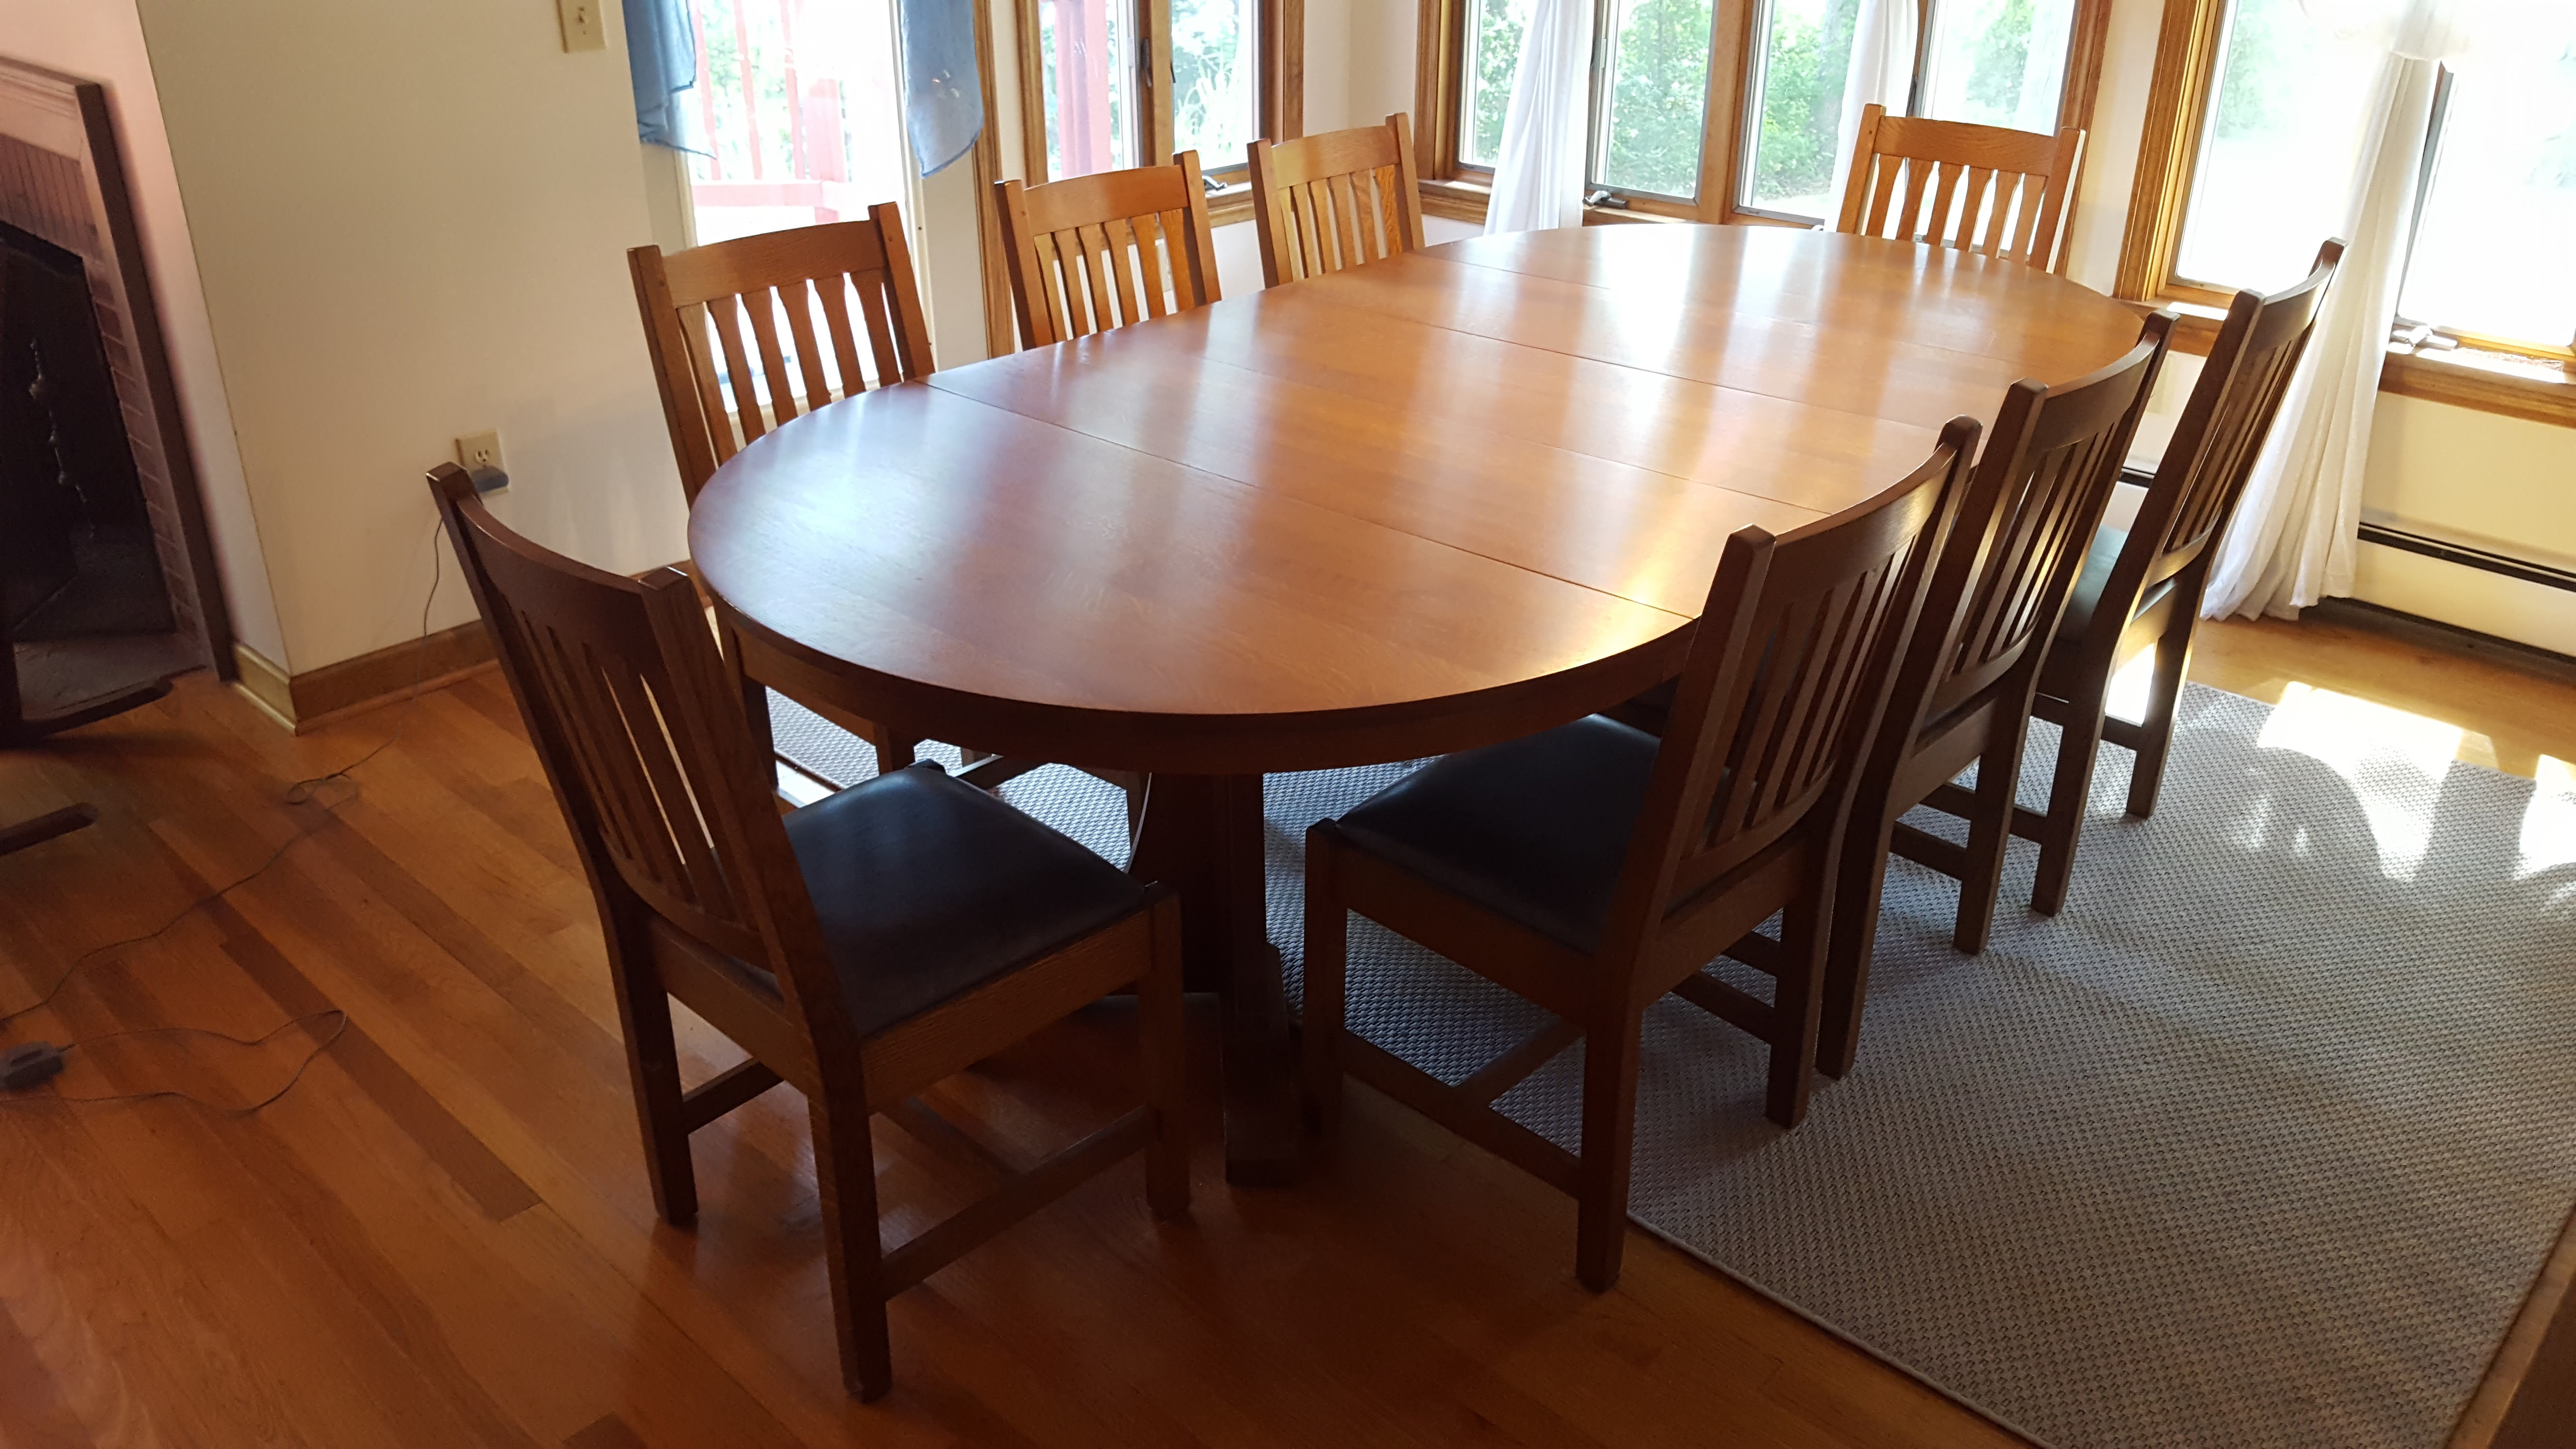 Mission Style Stickley Oak Dining Set Set of 9 Chairish : 8f50a886 0a42 4d25 8e01 21d6ed63f632aspectfitampwidth640ampheight640 from www.chairish.com size 640 x 640 jpeg 43kB